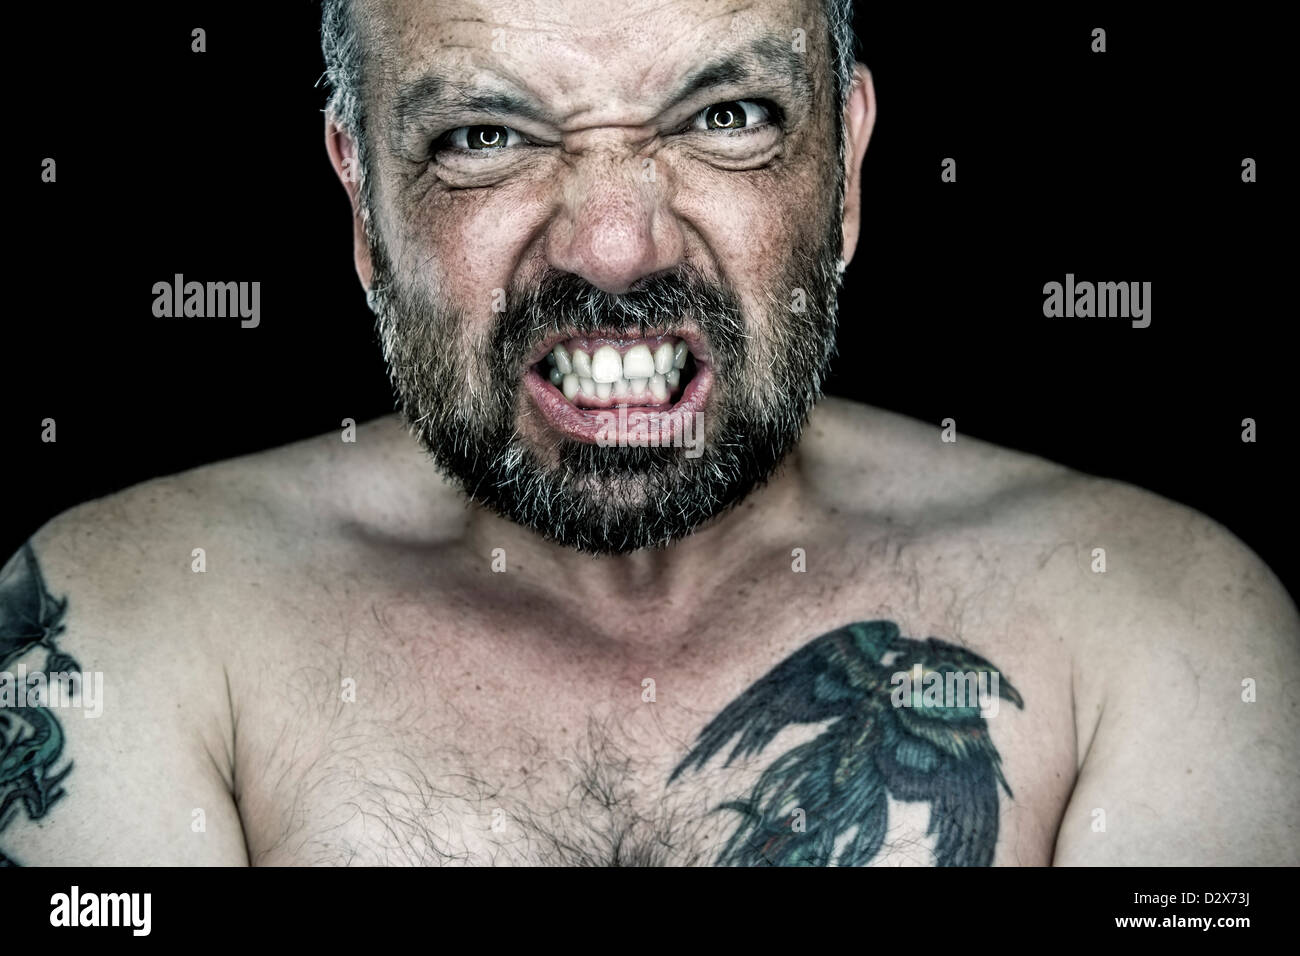 An image of an angry man with a beard - Stock Image